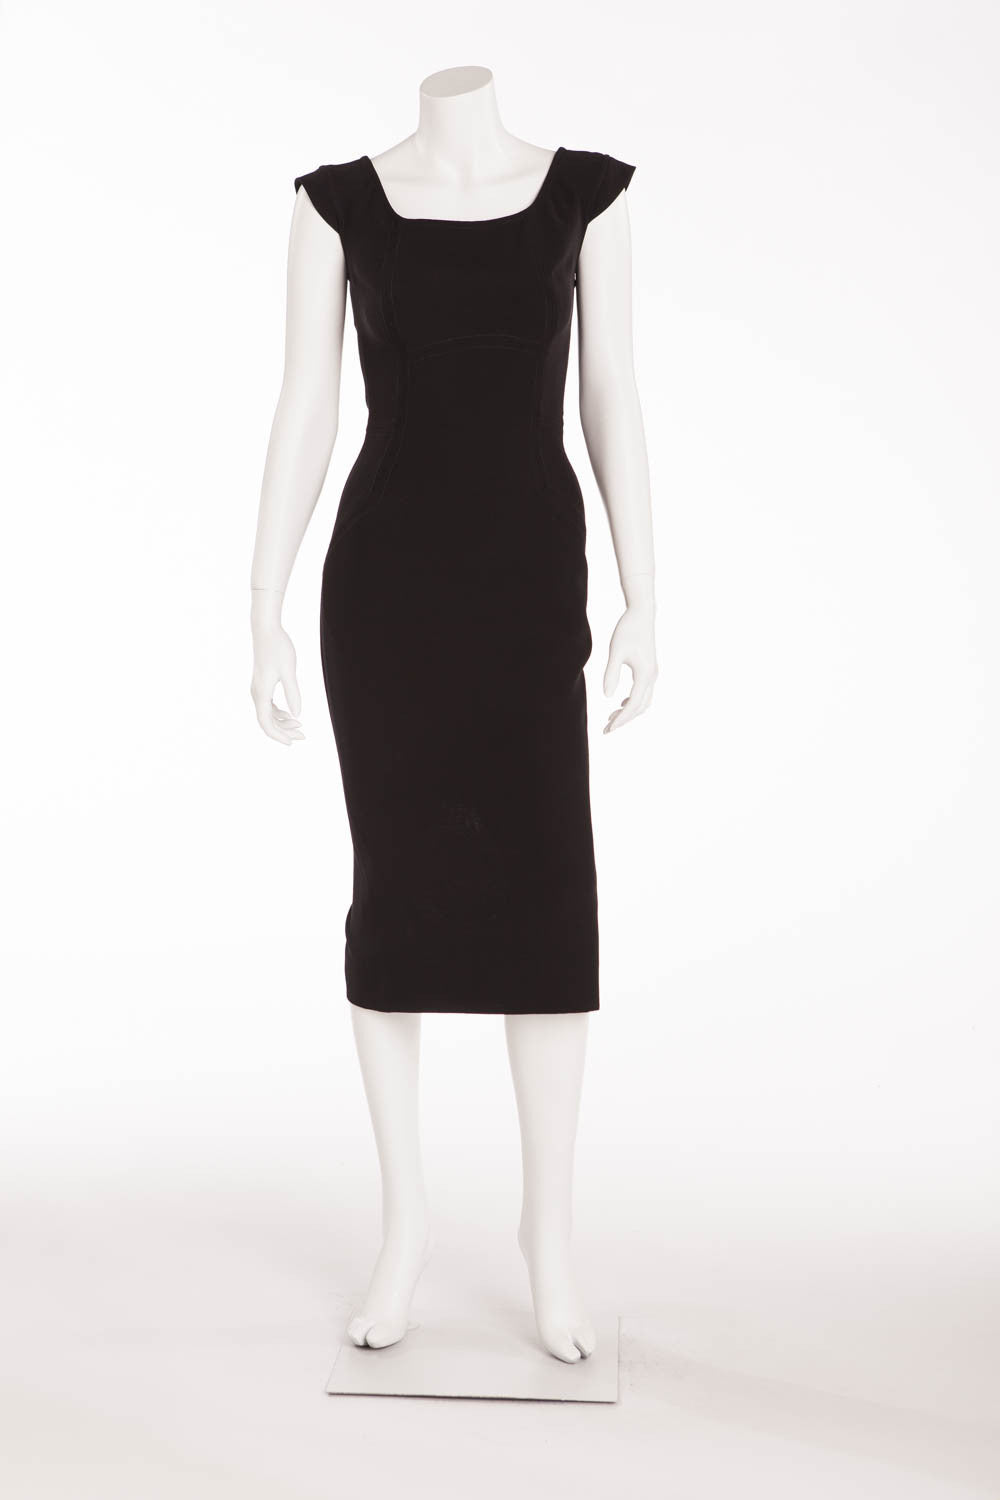 Victoria Beckham - Sleeveless Black Midi Dress - UK 10